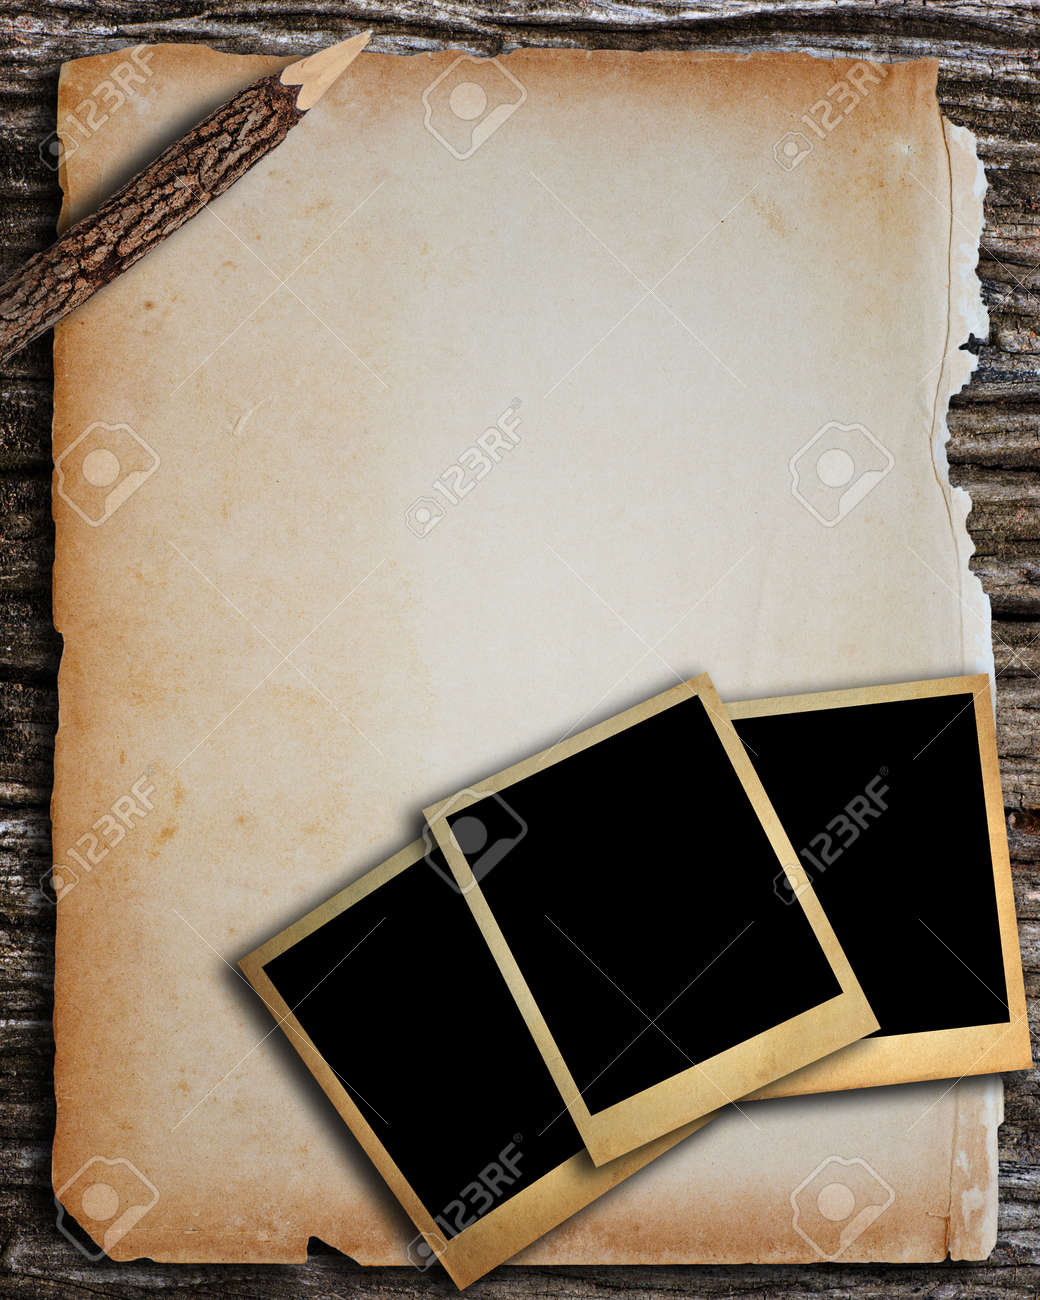 Old Paper And Old Photo Frame For Write And Put Image Stock Photo ...